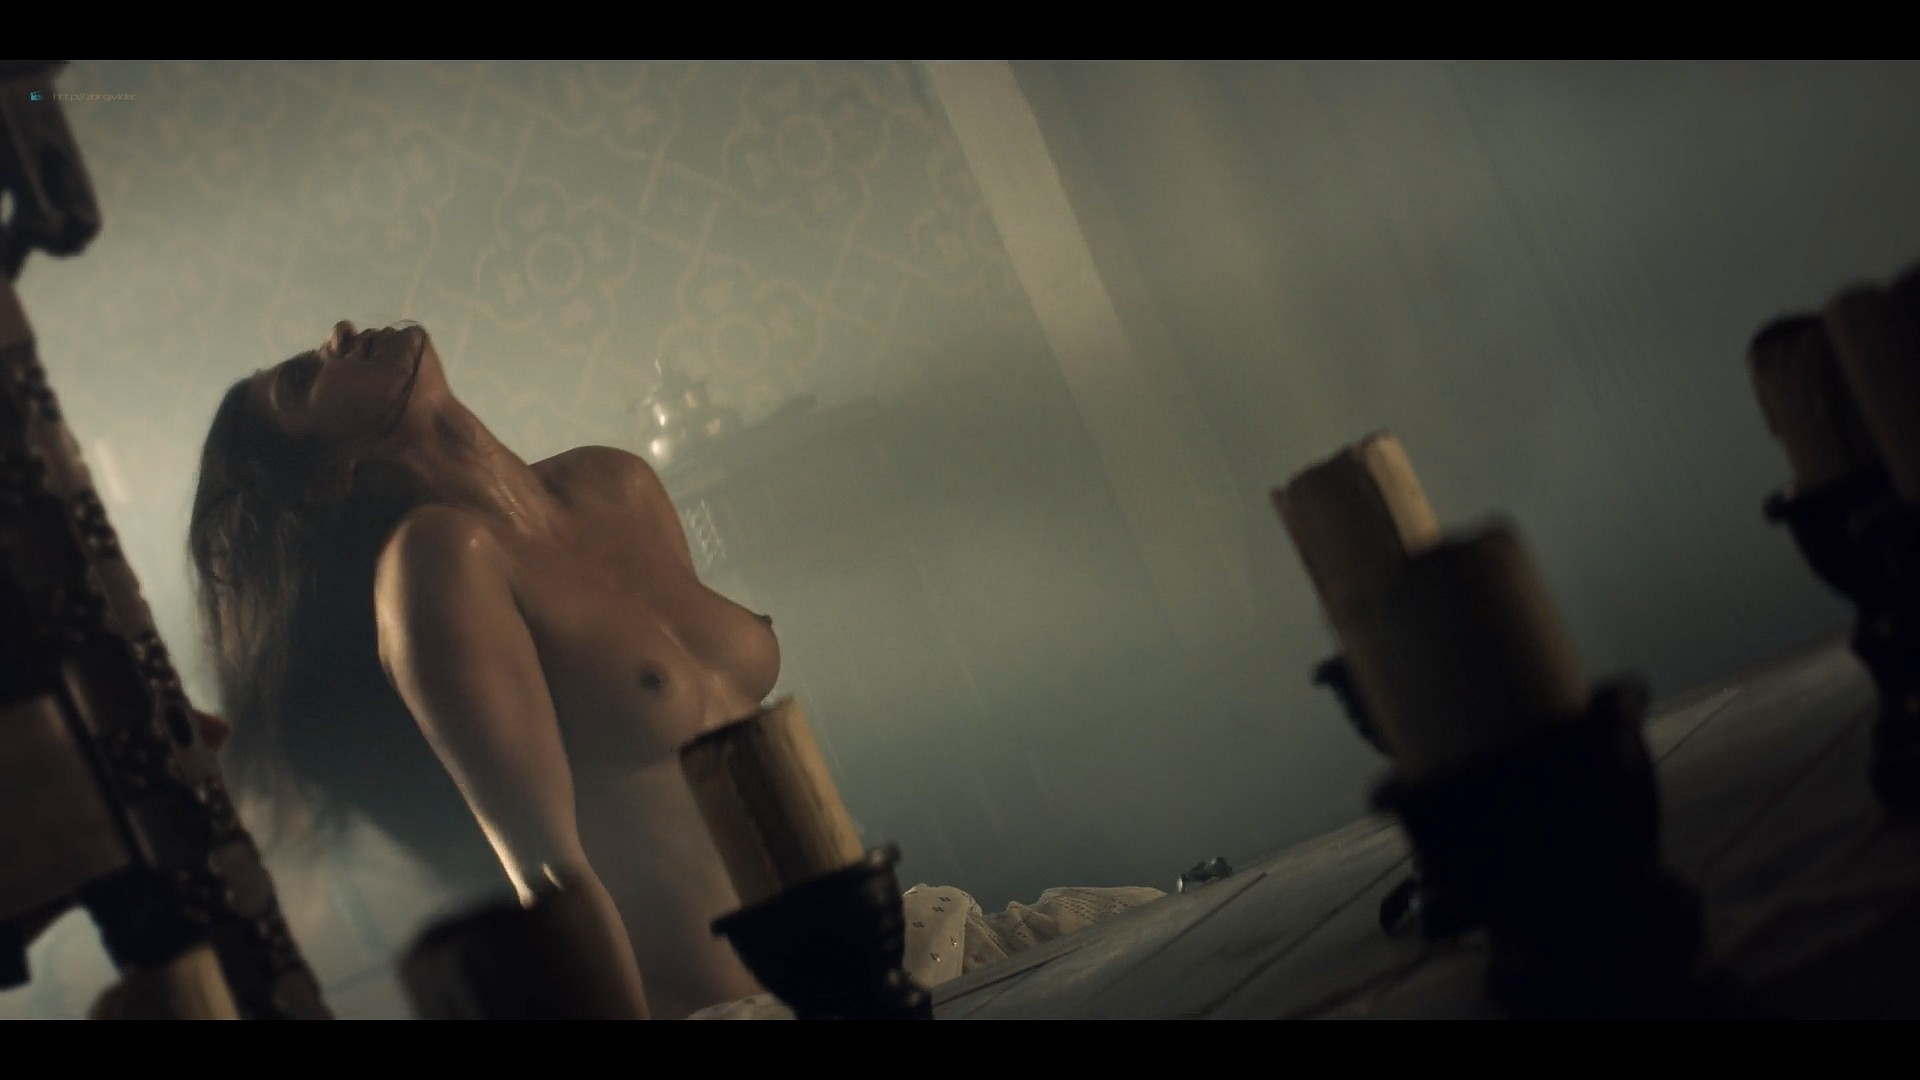 Anya Chalotra nude others nude too - The Witcher (2019) s1e5-6 HD 1080p WEB (6)